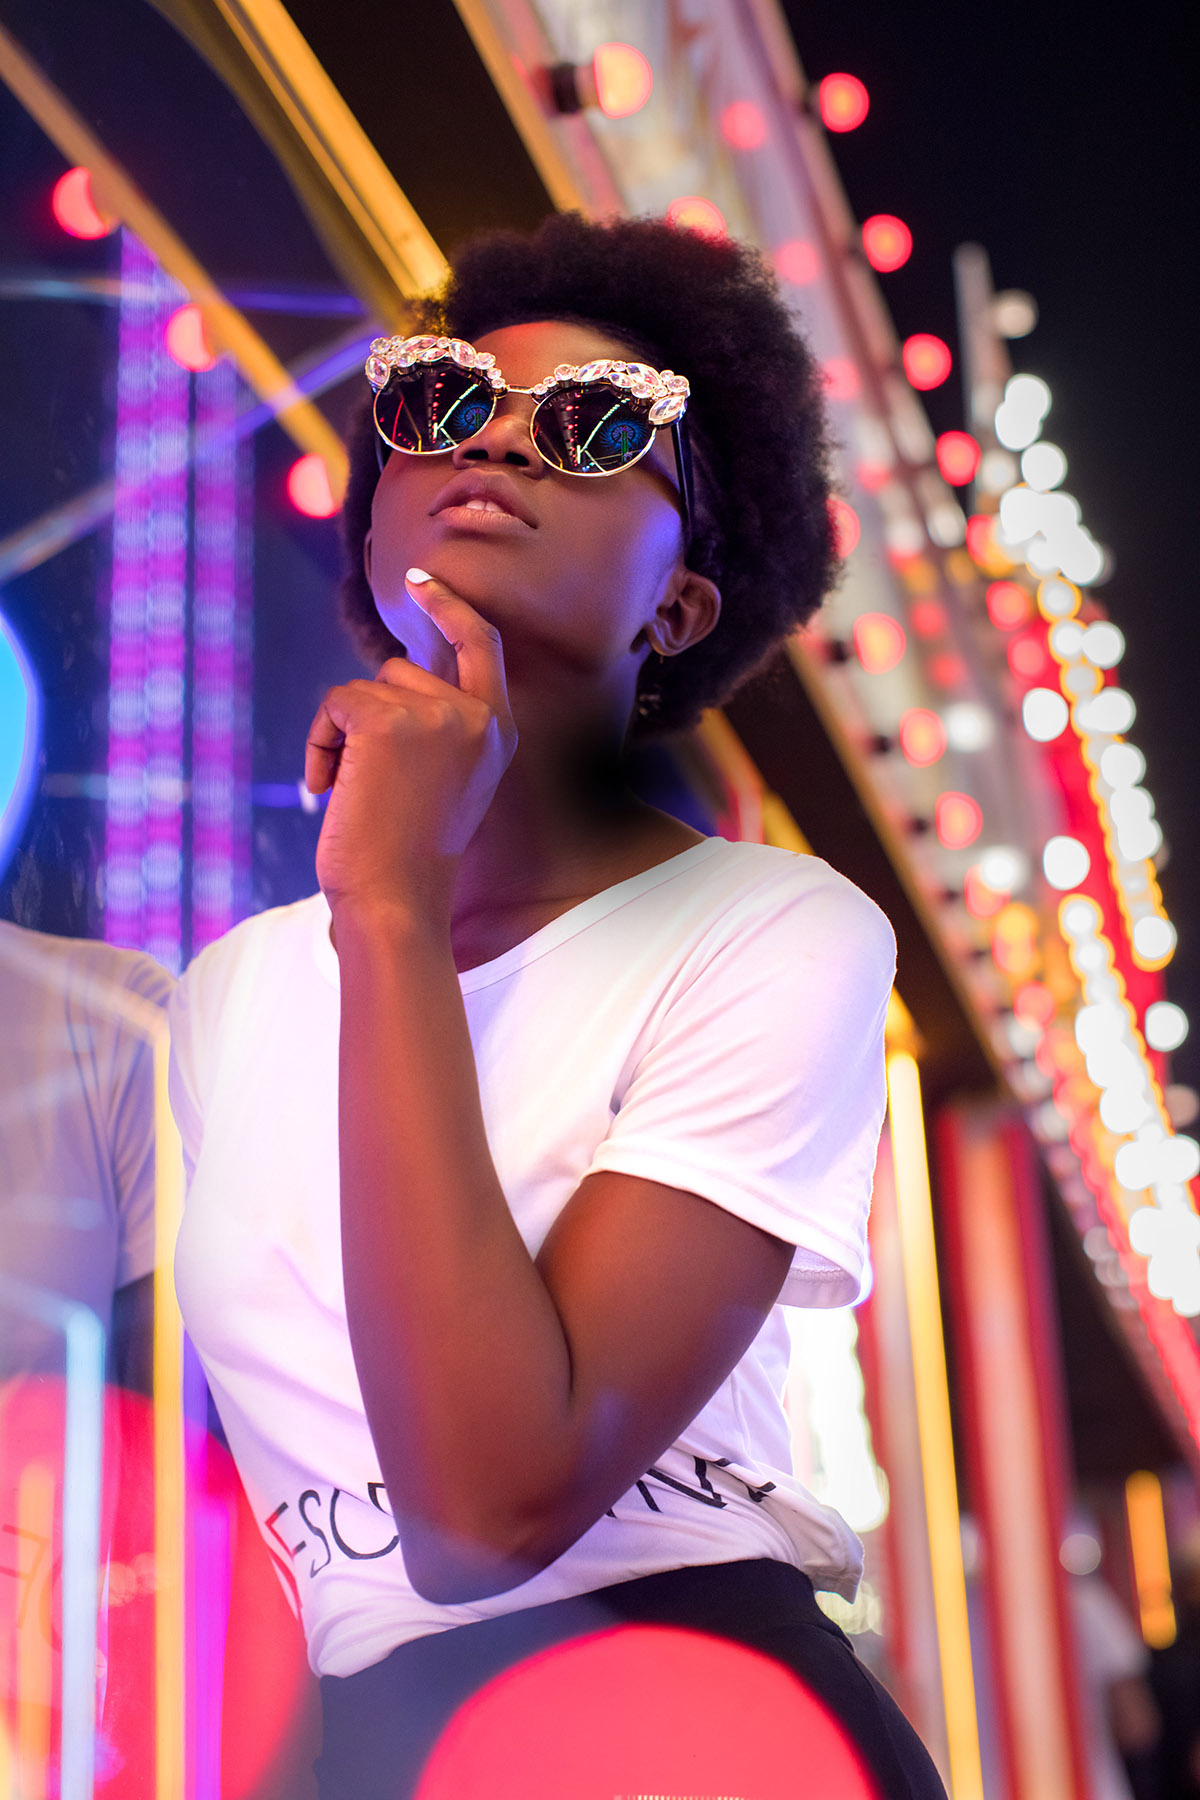 Neon fashion photoshoot by Loesje Kessels Fashion Photographer Dubai